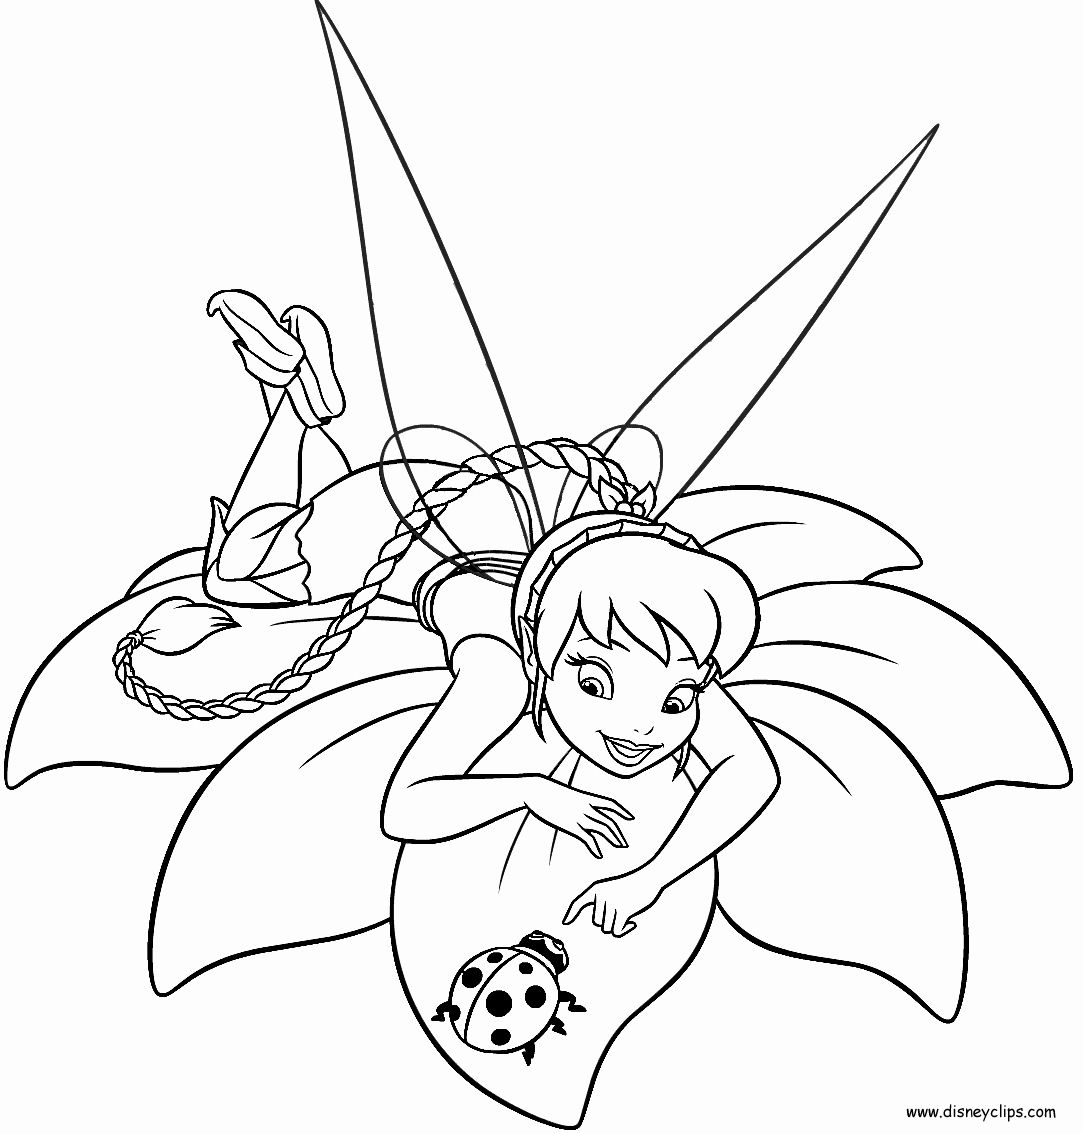 Tinkle Bell Coloring Pages Elegant Printable Tinkerbell Coloring Pages In 2021 Fairy Coloring Pages Tinkerbell Coloring Pages Fairy Coloring